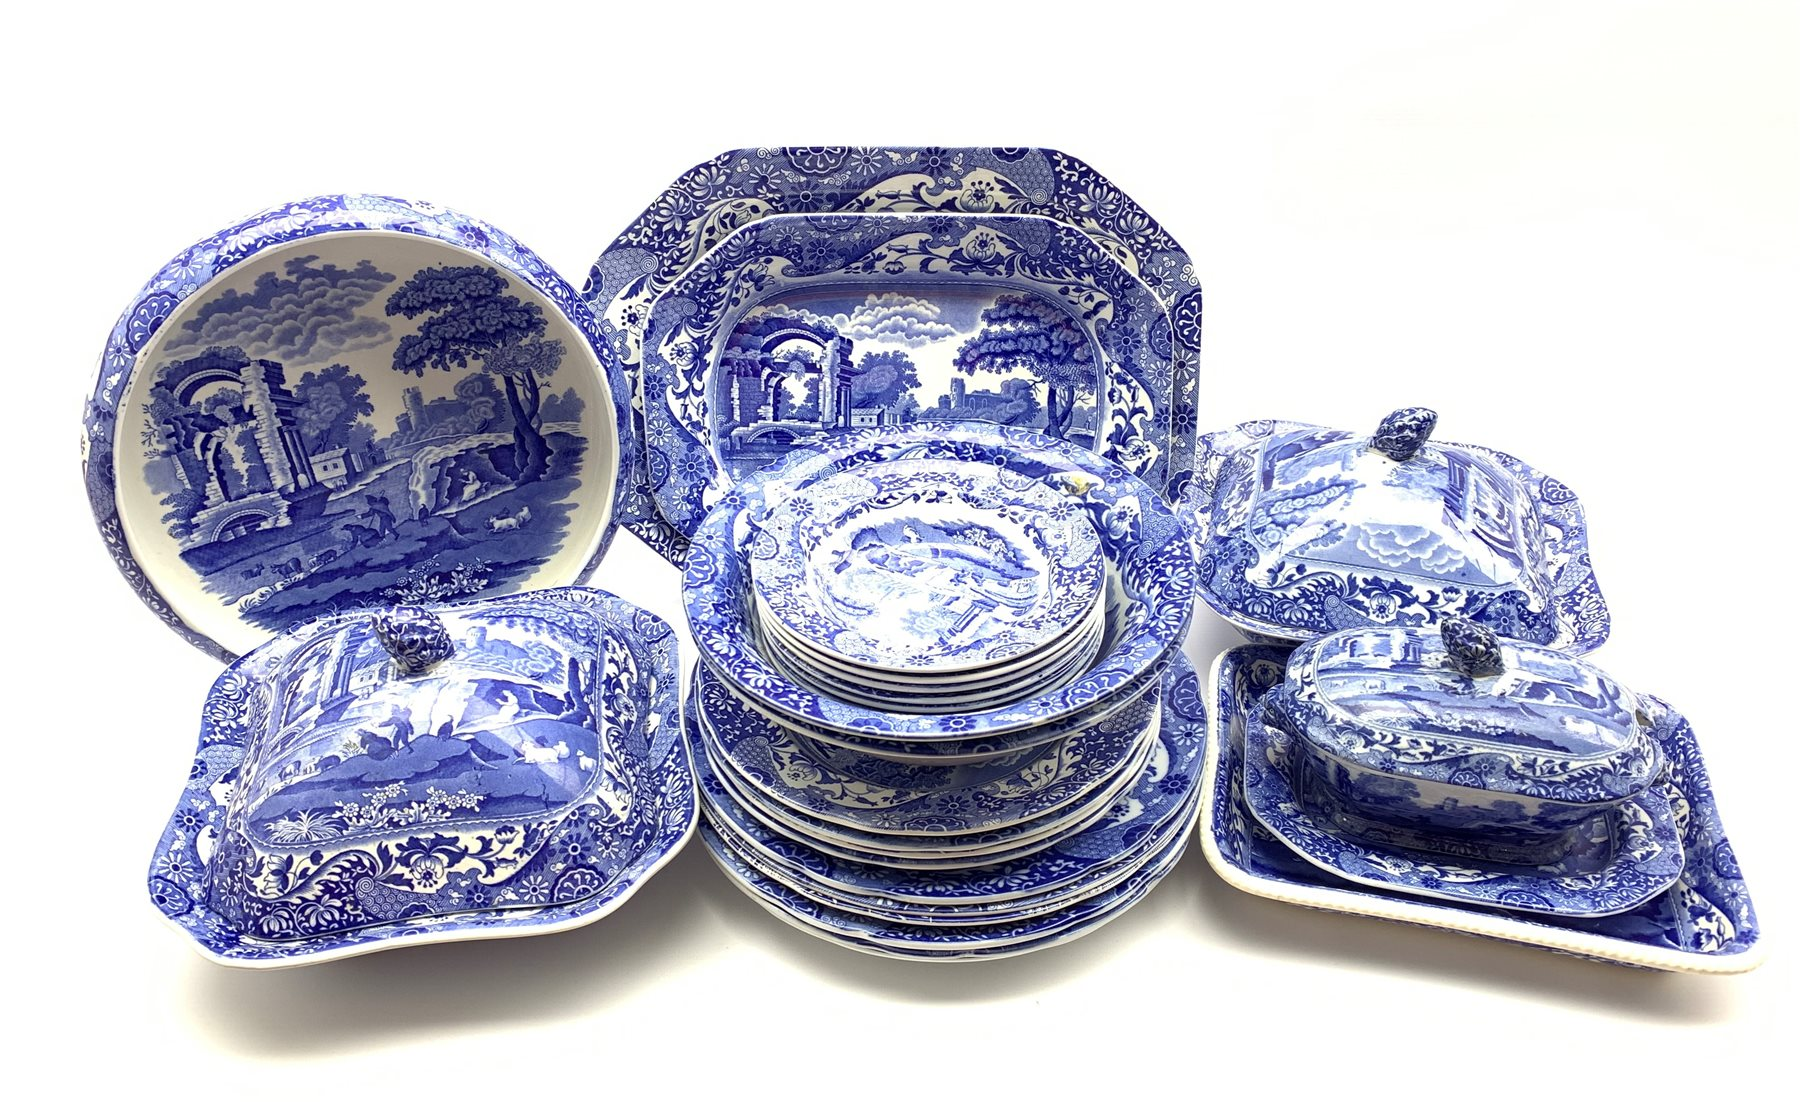 Copeland Spode's Italian pattern blue and white dinner service comprising six dinner plates, four de